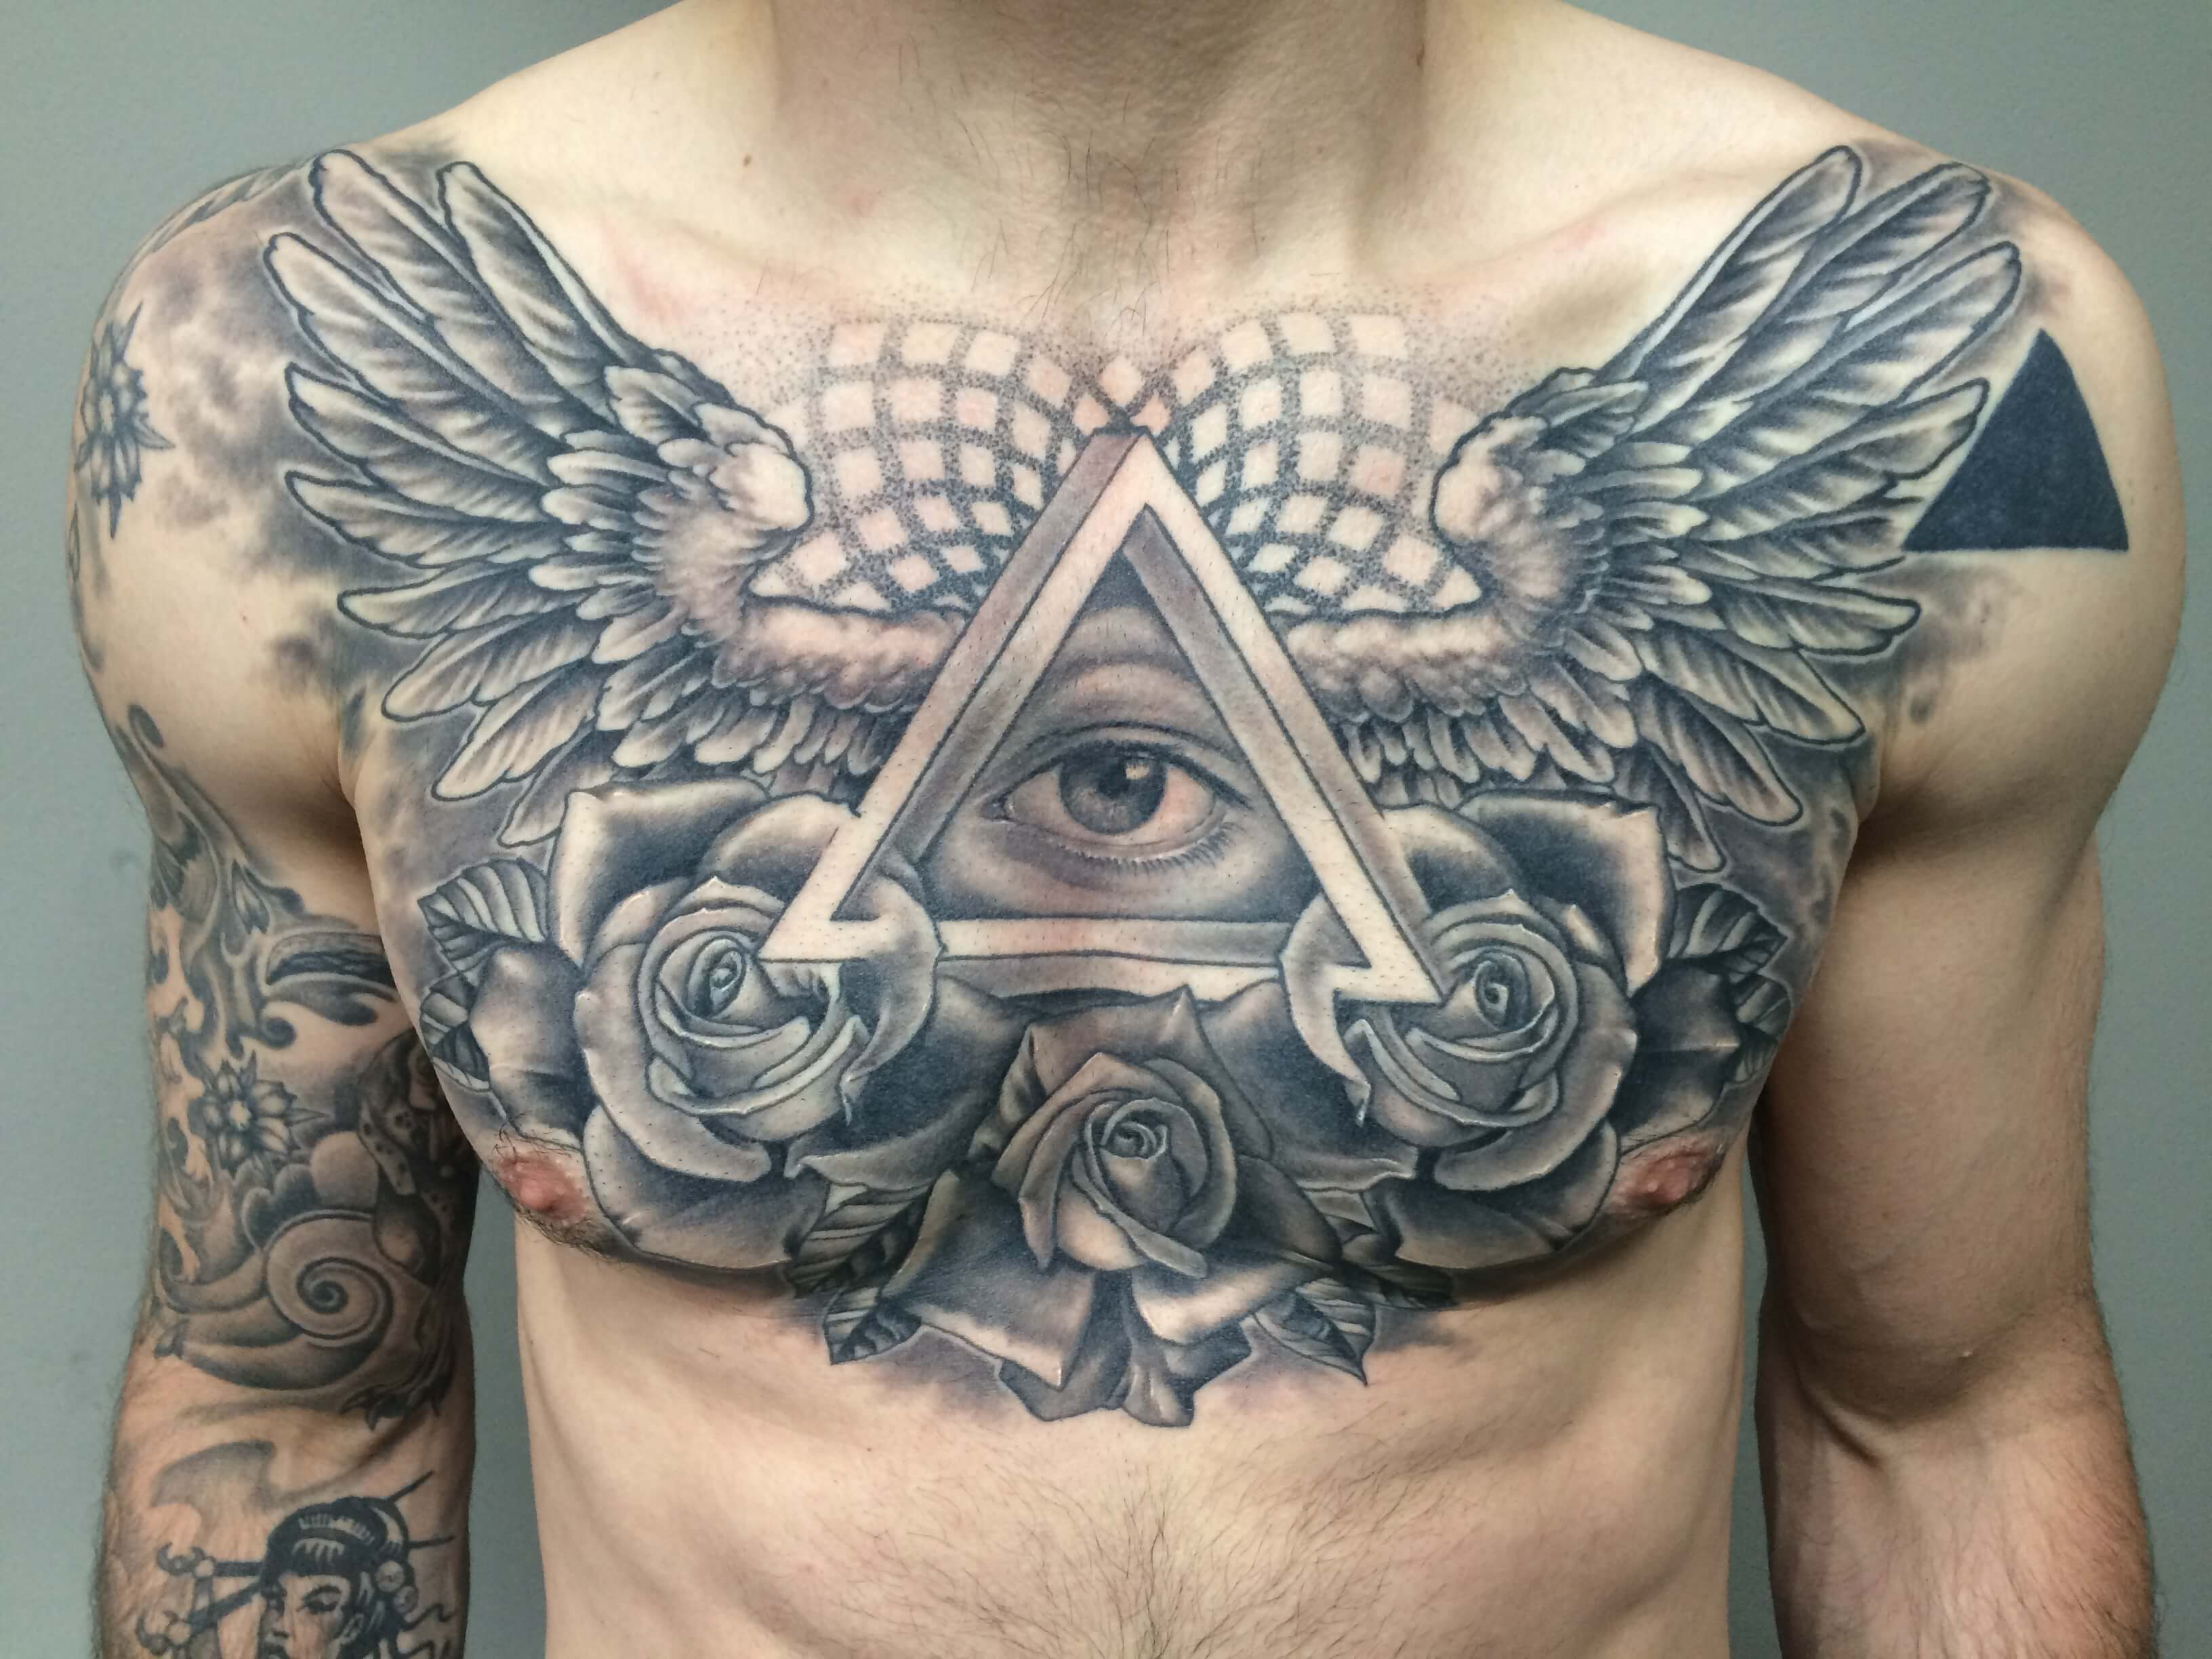 The 100 Best Chest Tattoos For Men Improb intended for sizing 3264 X 2448